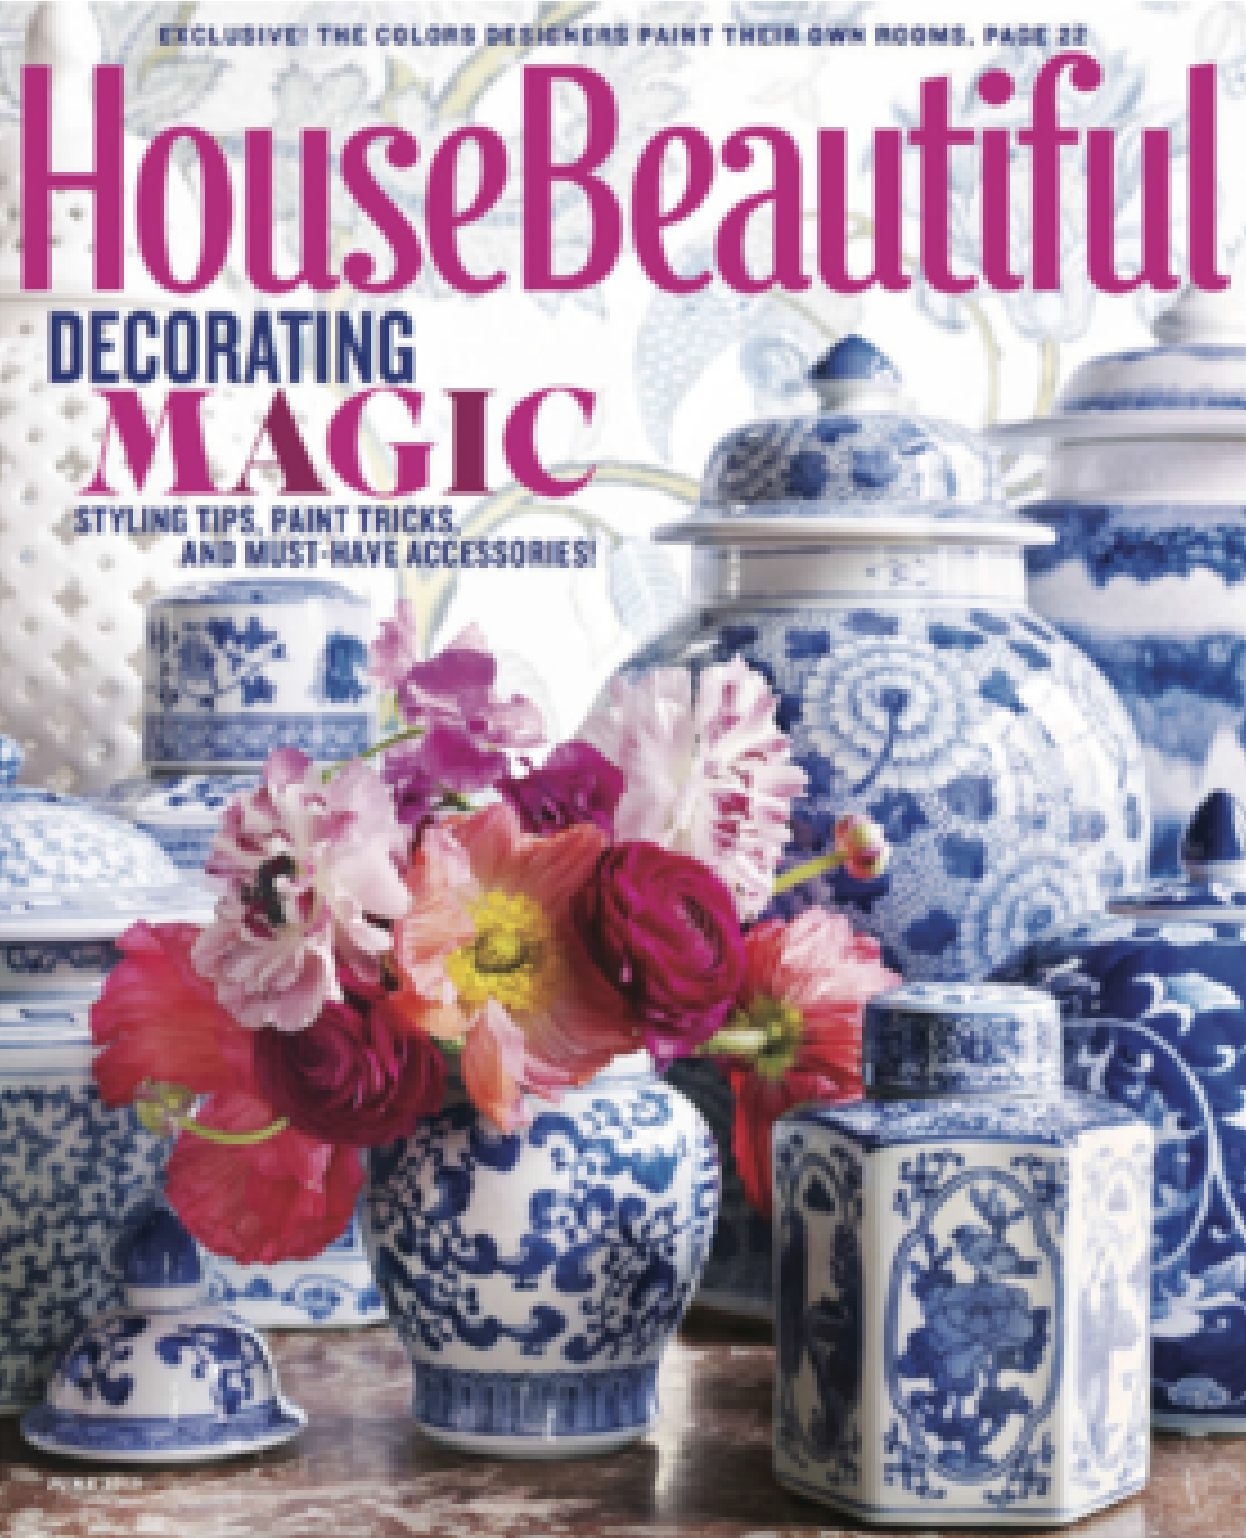 HouseBeautiful_cover.png